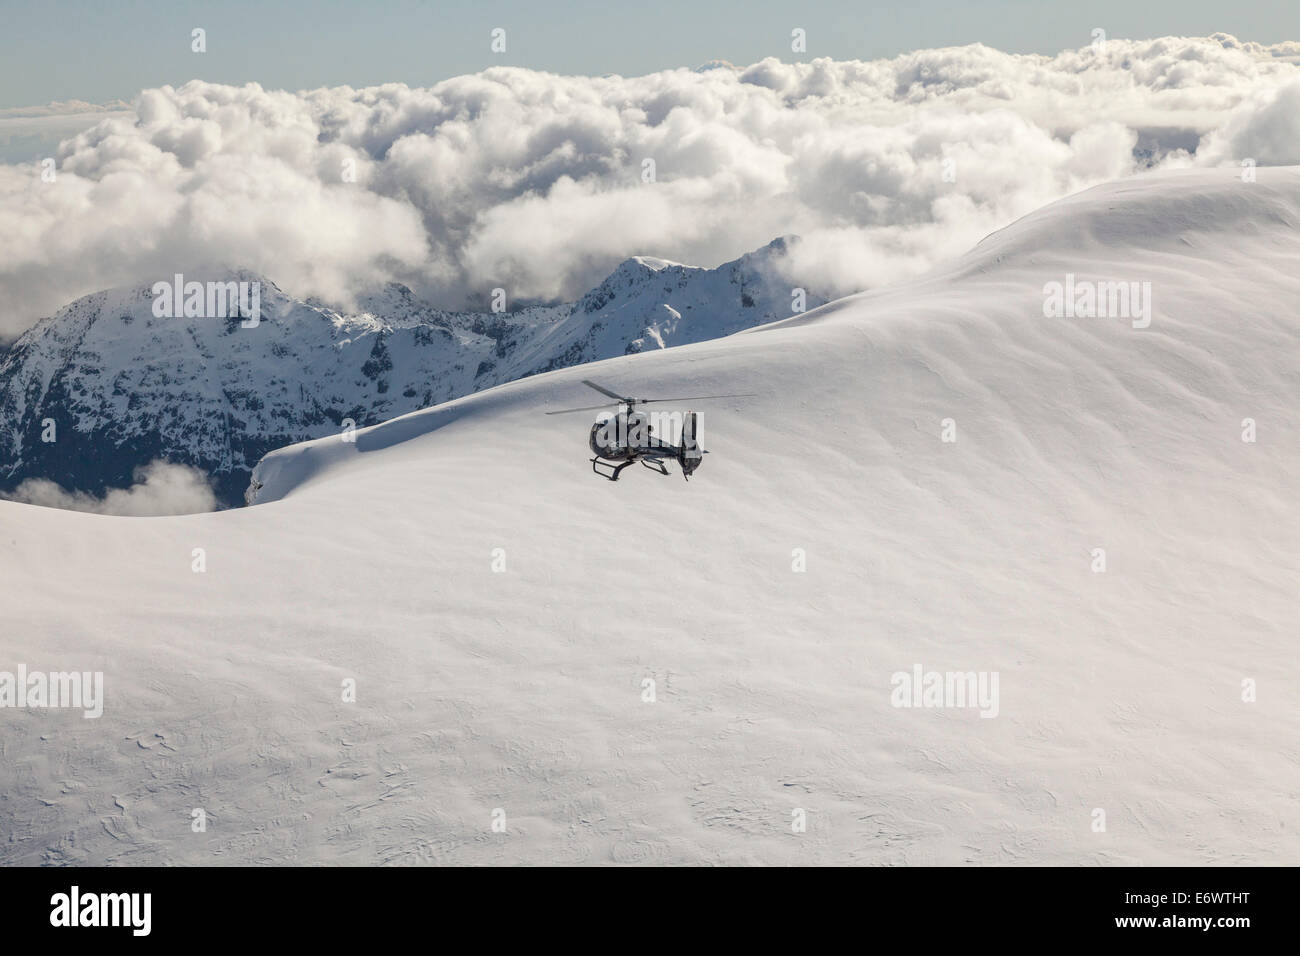 Helicopter flight over snowy mountains, South Island, New Zealand - Stock Image